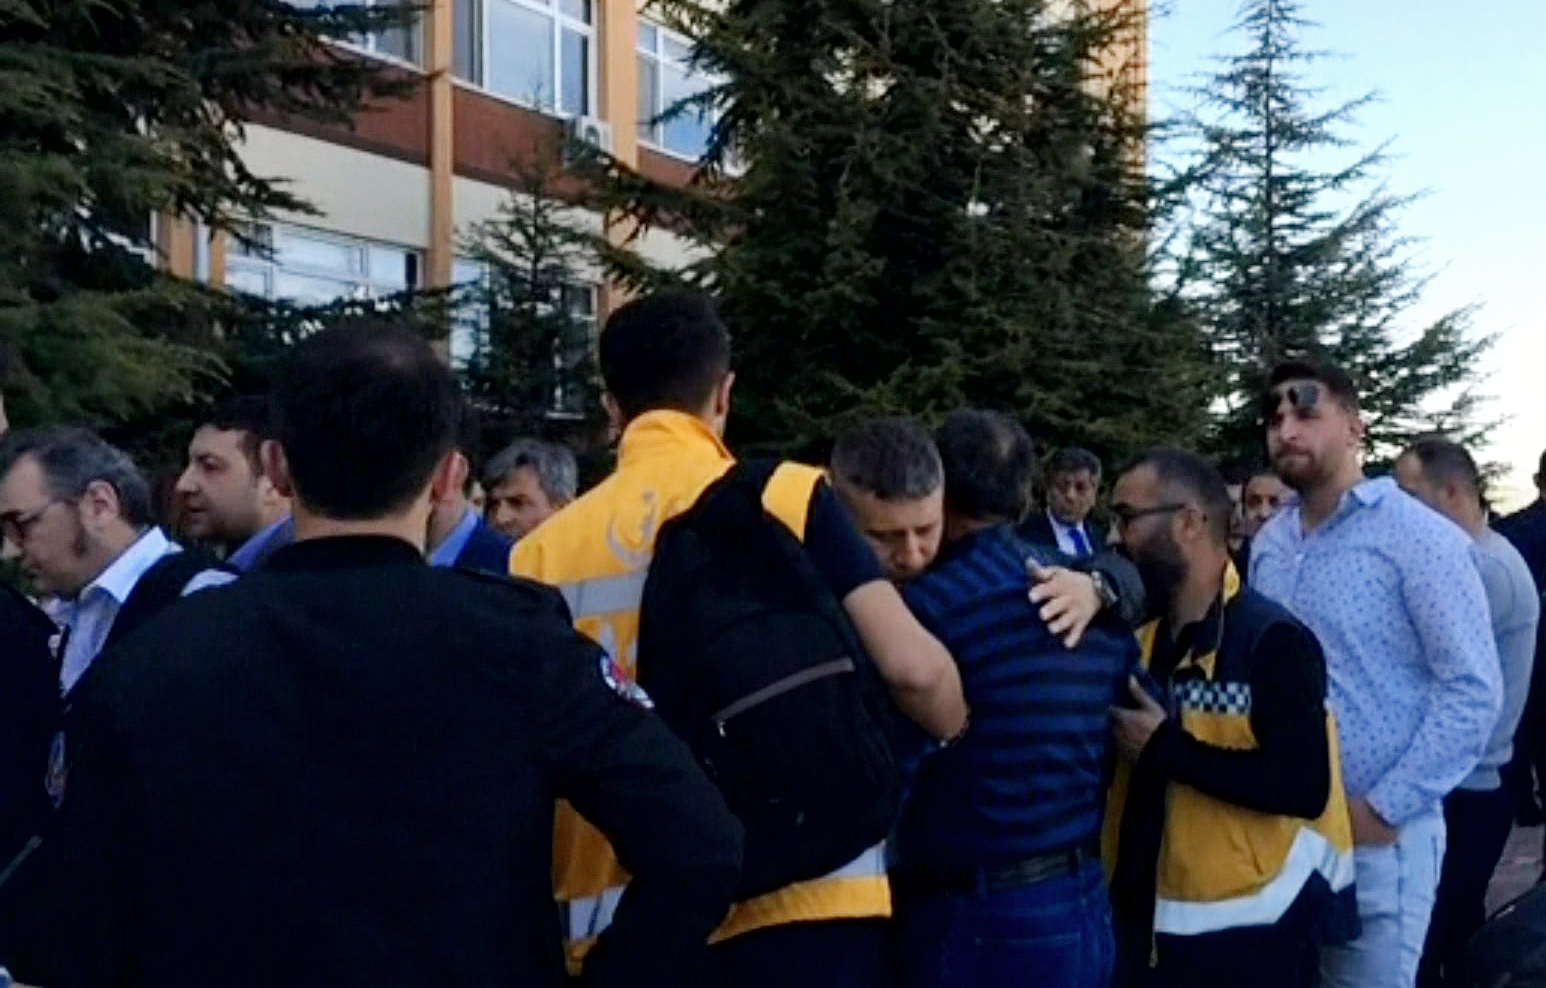 4 killed after Turkish university staffer shot fellow colleagues